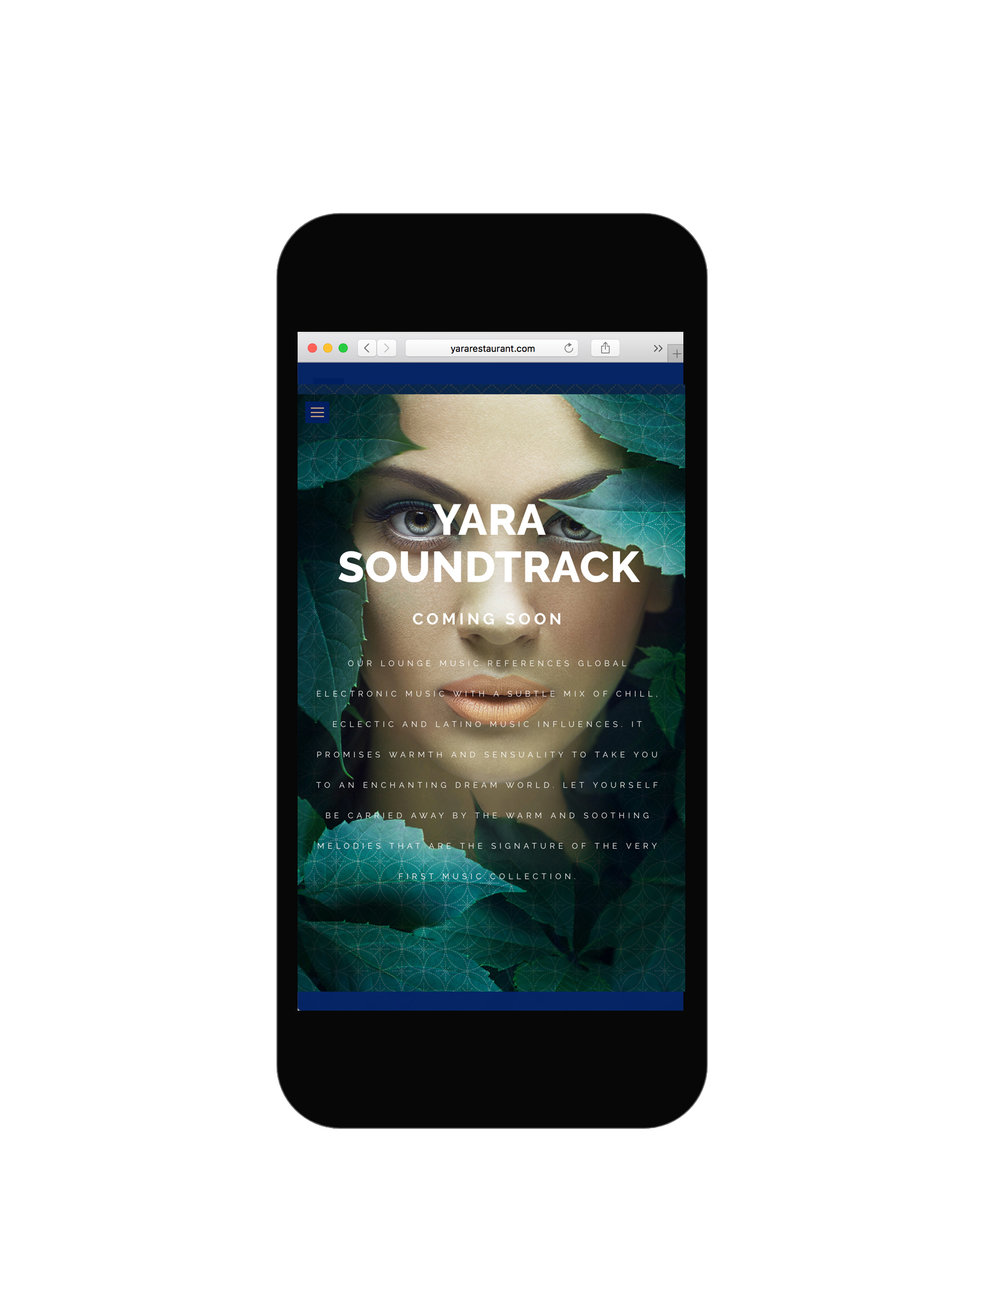 iphone2yara.jpg